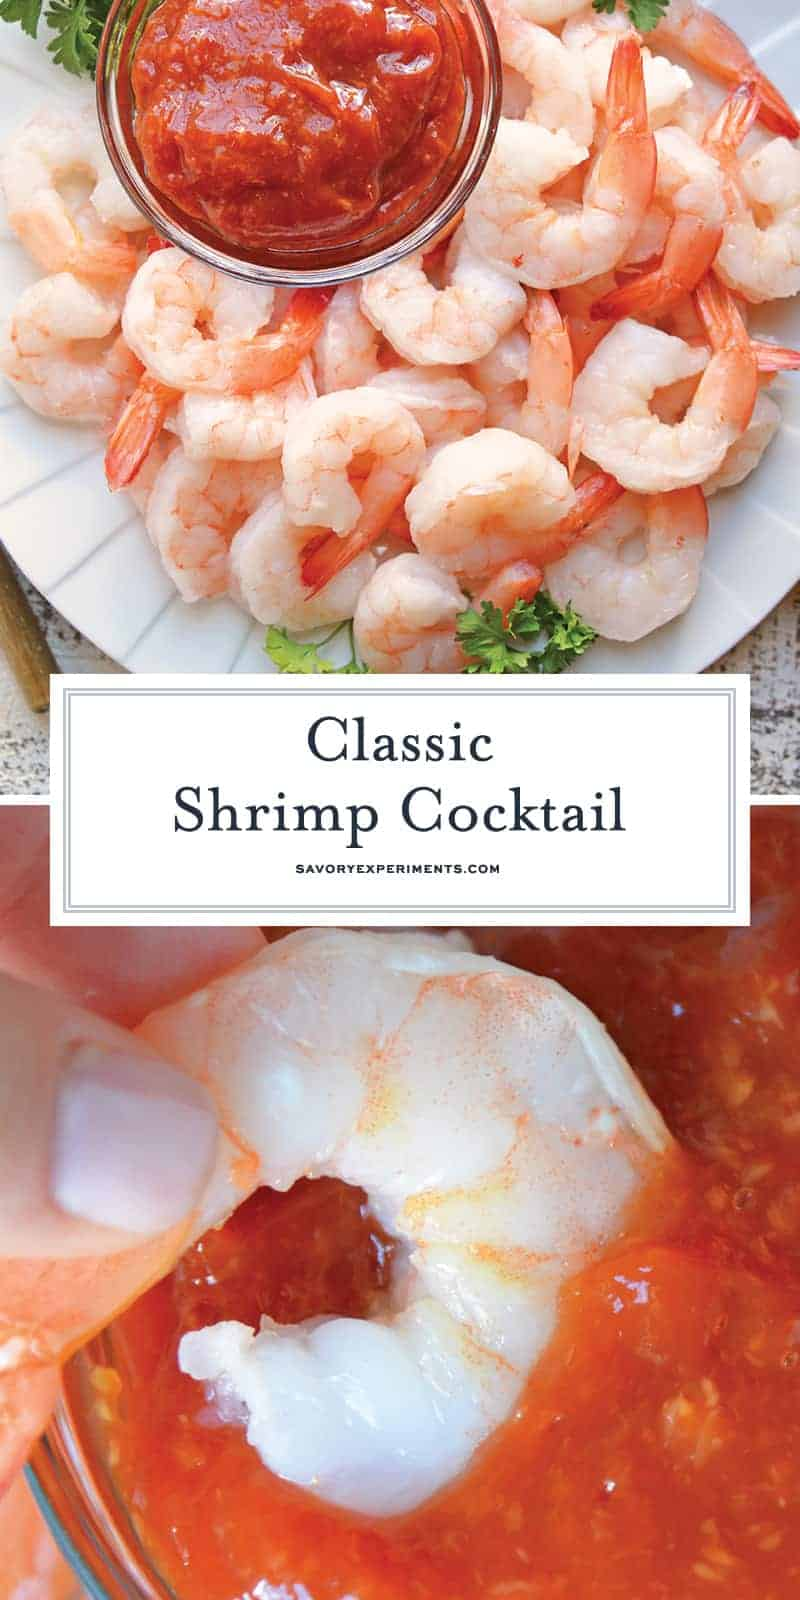 This Classic Shrimp Cocktail recipe goes back to the basics, with only 3 ingredients to the best shrimp cocktail. Perfect for holidays and dinner parties! #shrimpcocktailrecipe #bestshrimpcocktail www.savoryexperiments.com